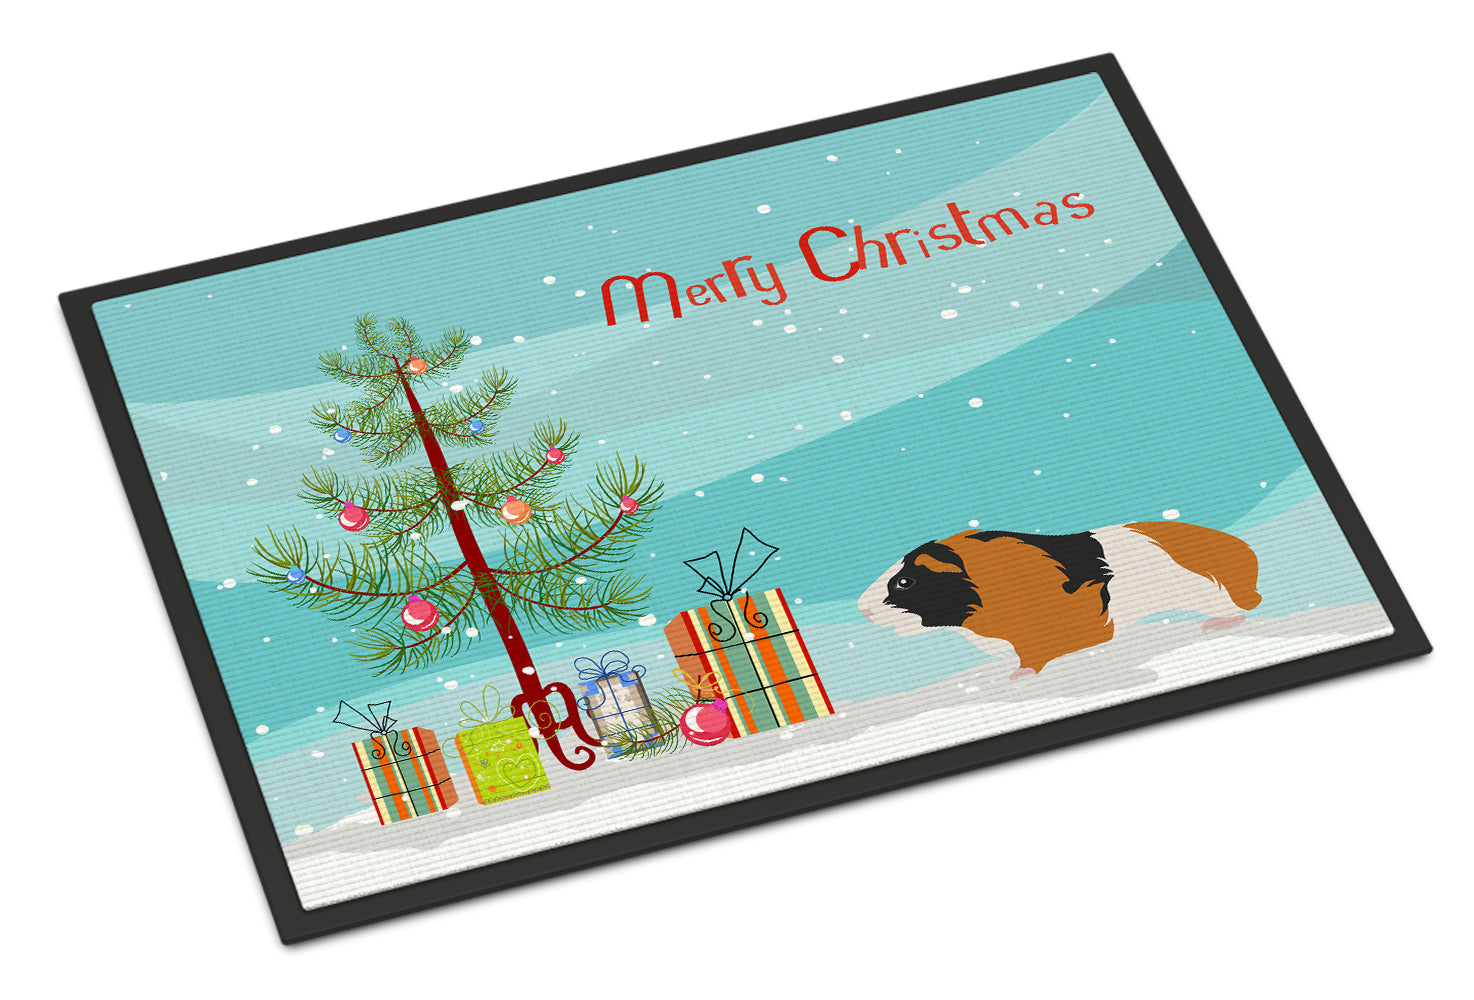 Rex Guinea Pig Merry Christmas Indoor or Outdoor Mat 18x27 CK4444MAT by Caroline's Treasures